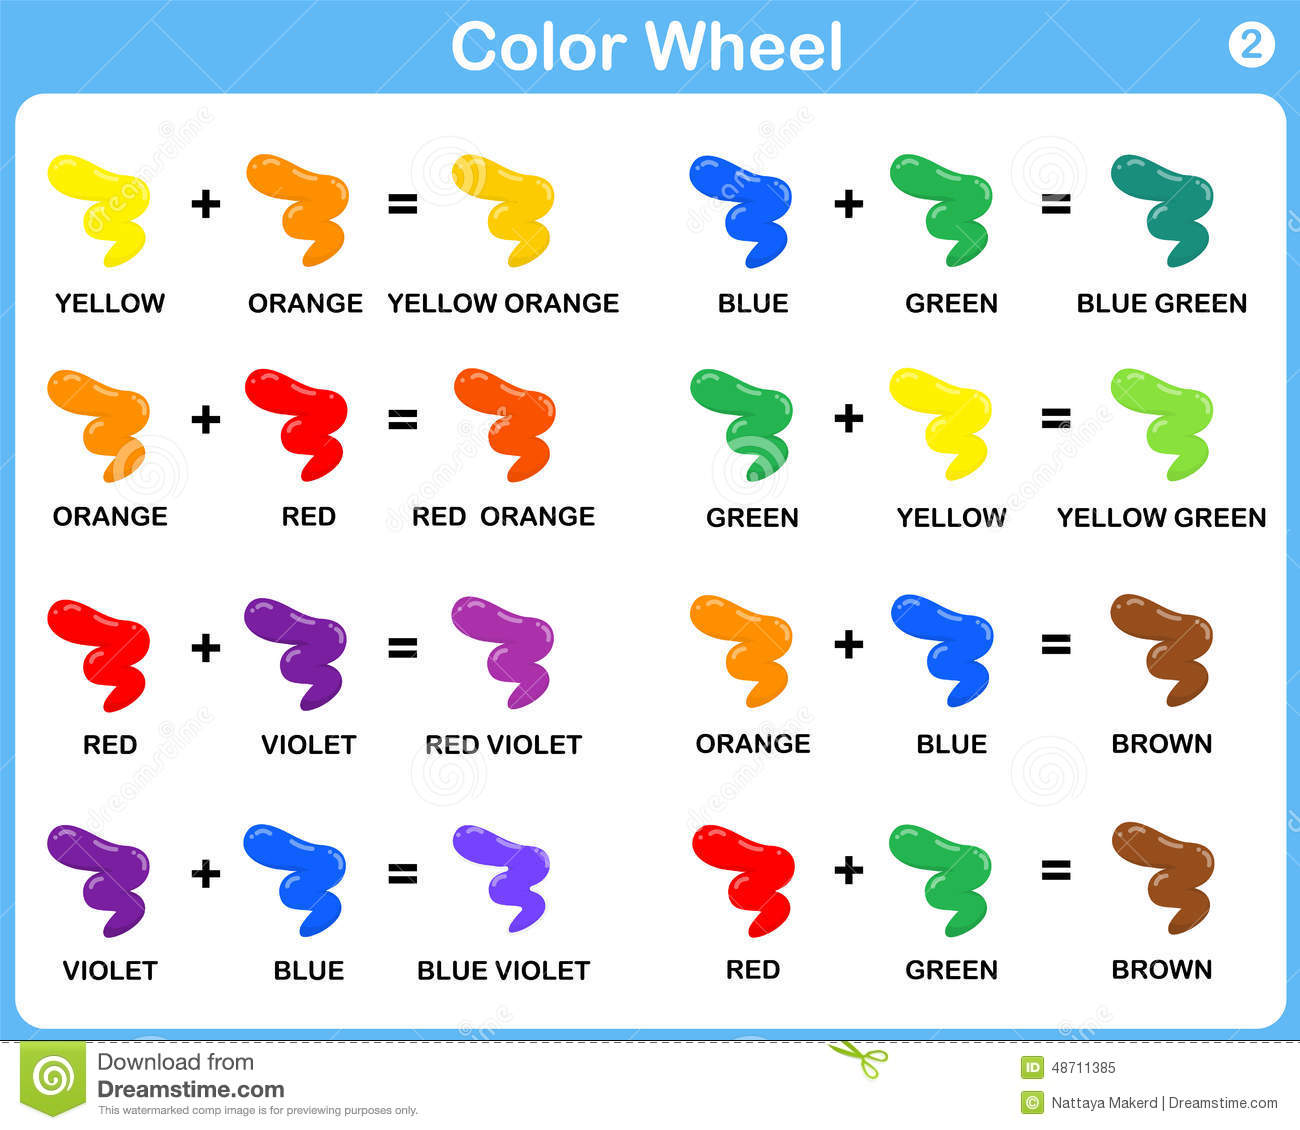 Color theory worksheet for kids - Color Wheel Worksheet For Kids